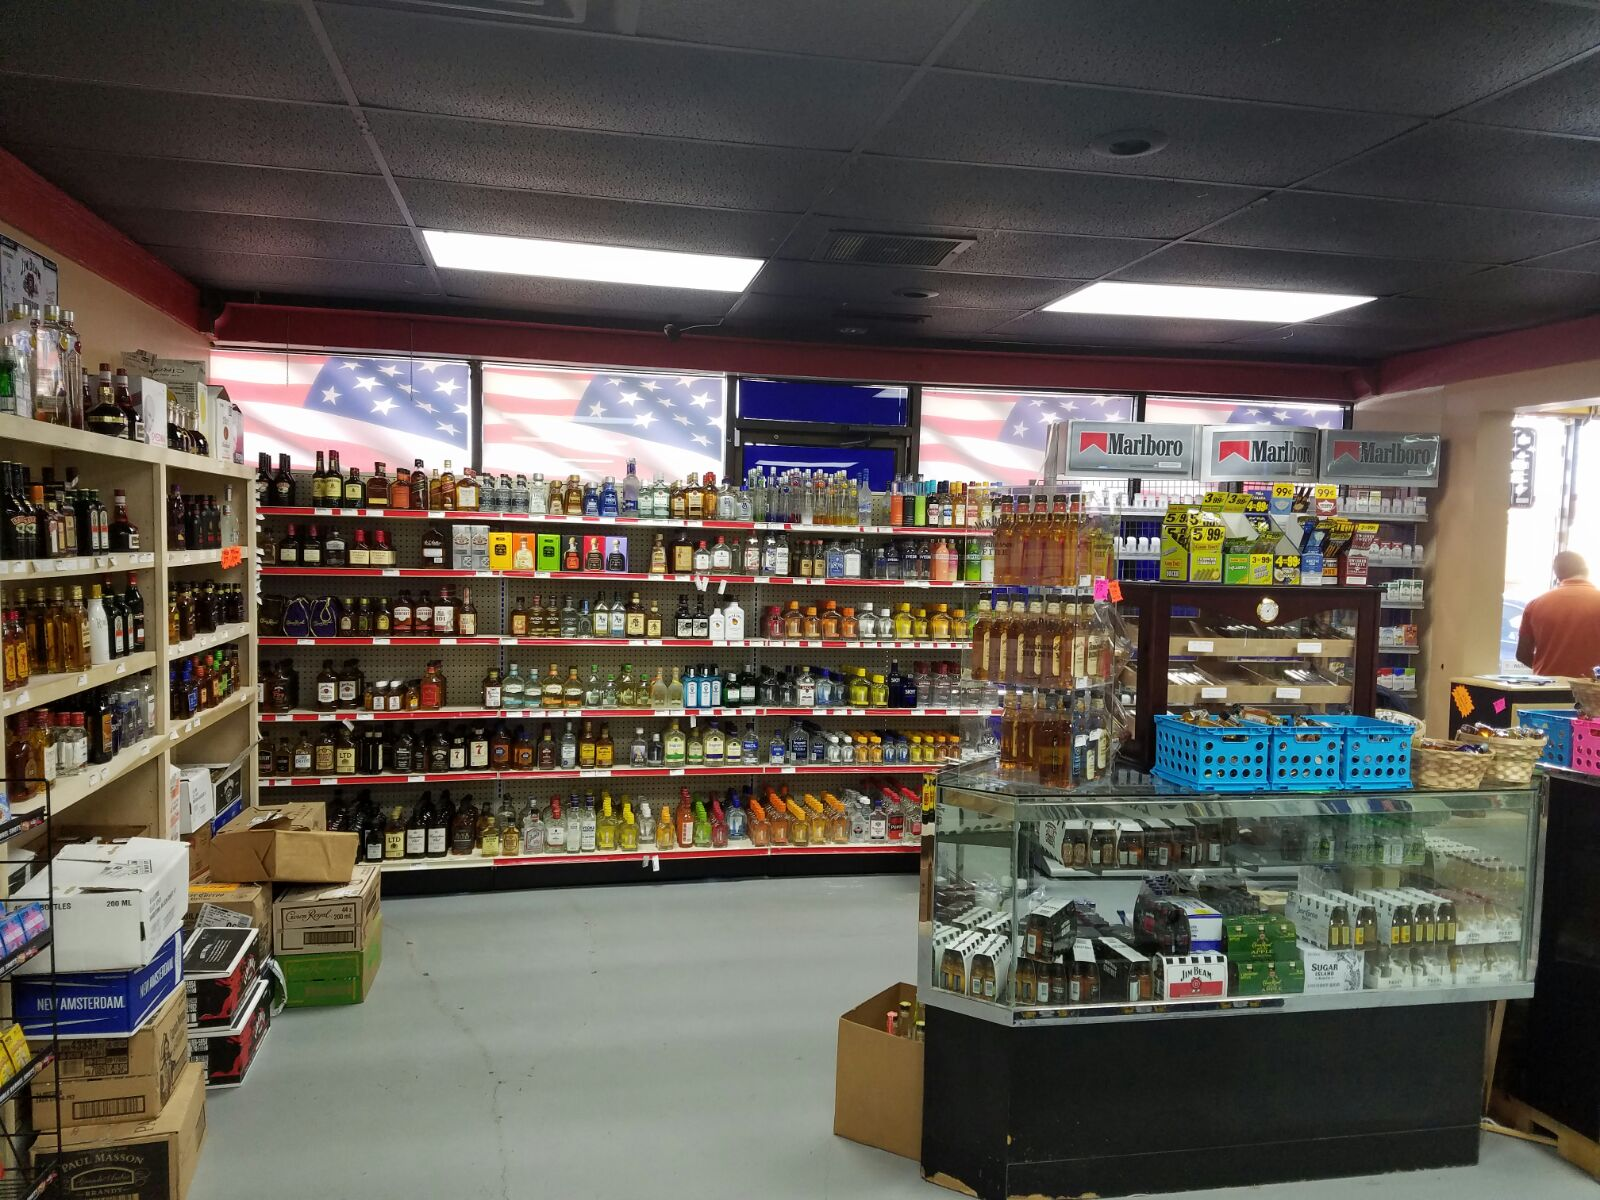 Gallery Sams Liquor Rowlett Games vehicle parts & accessories video games & consoles wholesale & job lots everything sams wholesale club. sams wholesale priced liquor